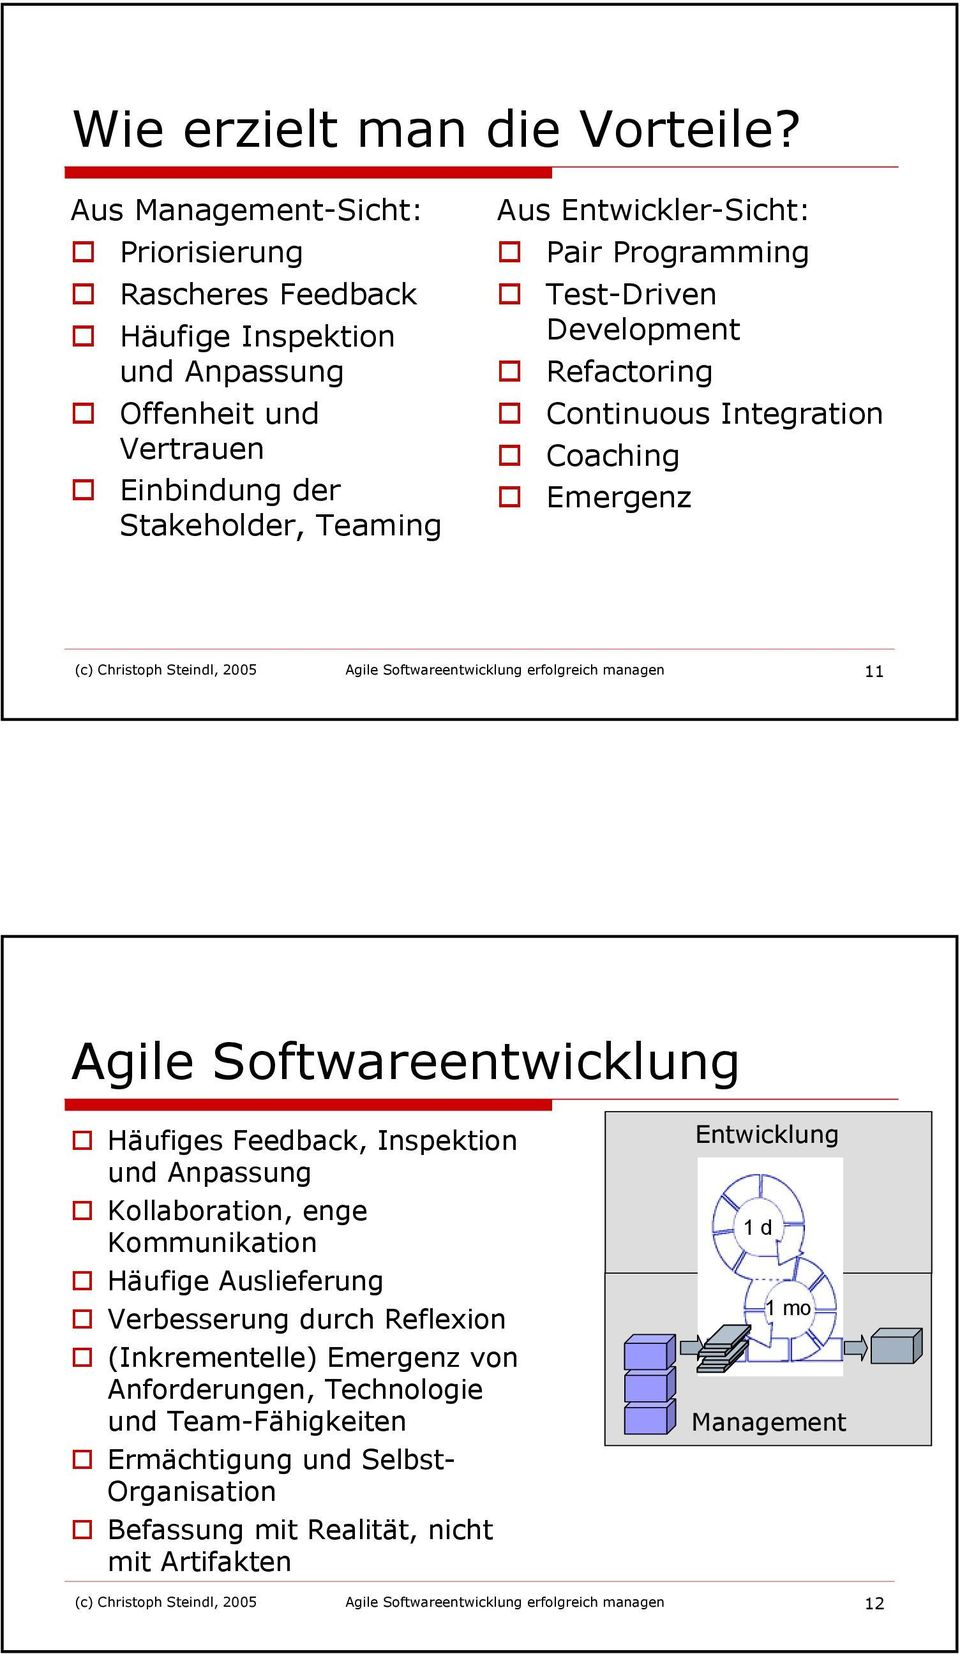 Development Refactoring Continuous Integration Coaching Emergenz (c) Christoph Steindl, 2005 Agile Softwareentwicklung erfolgreich managen 11 Agile Softwareentwicklung Häufiges Feedback, Inspektion